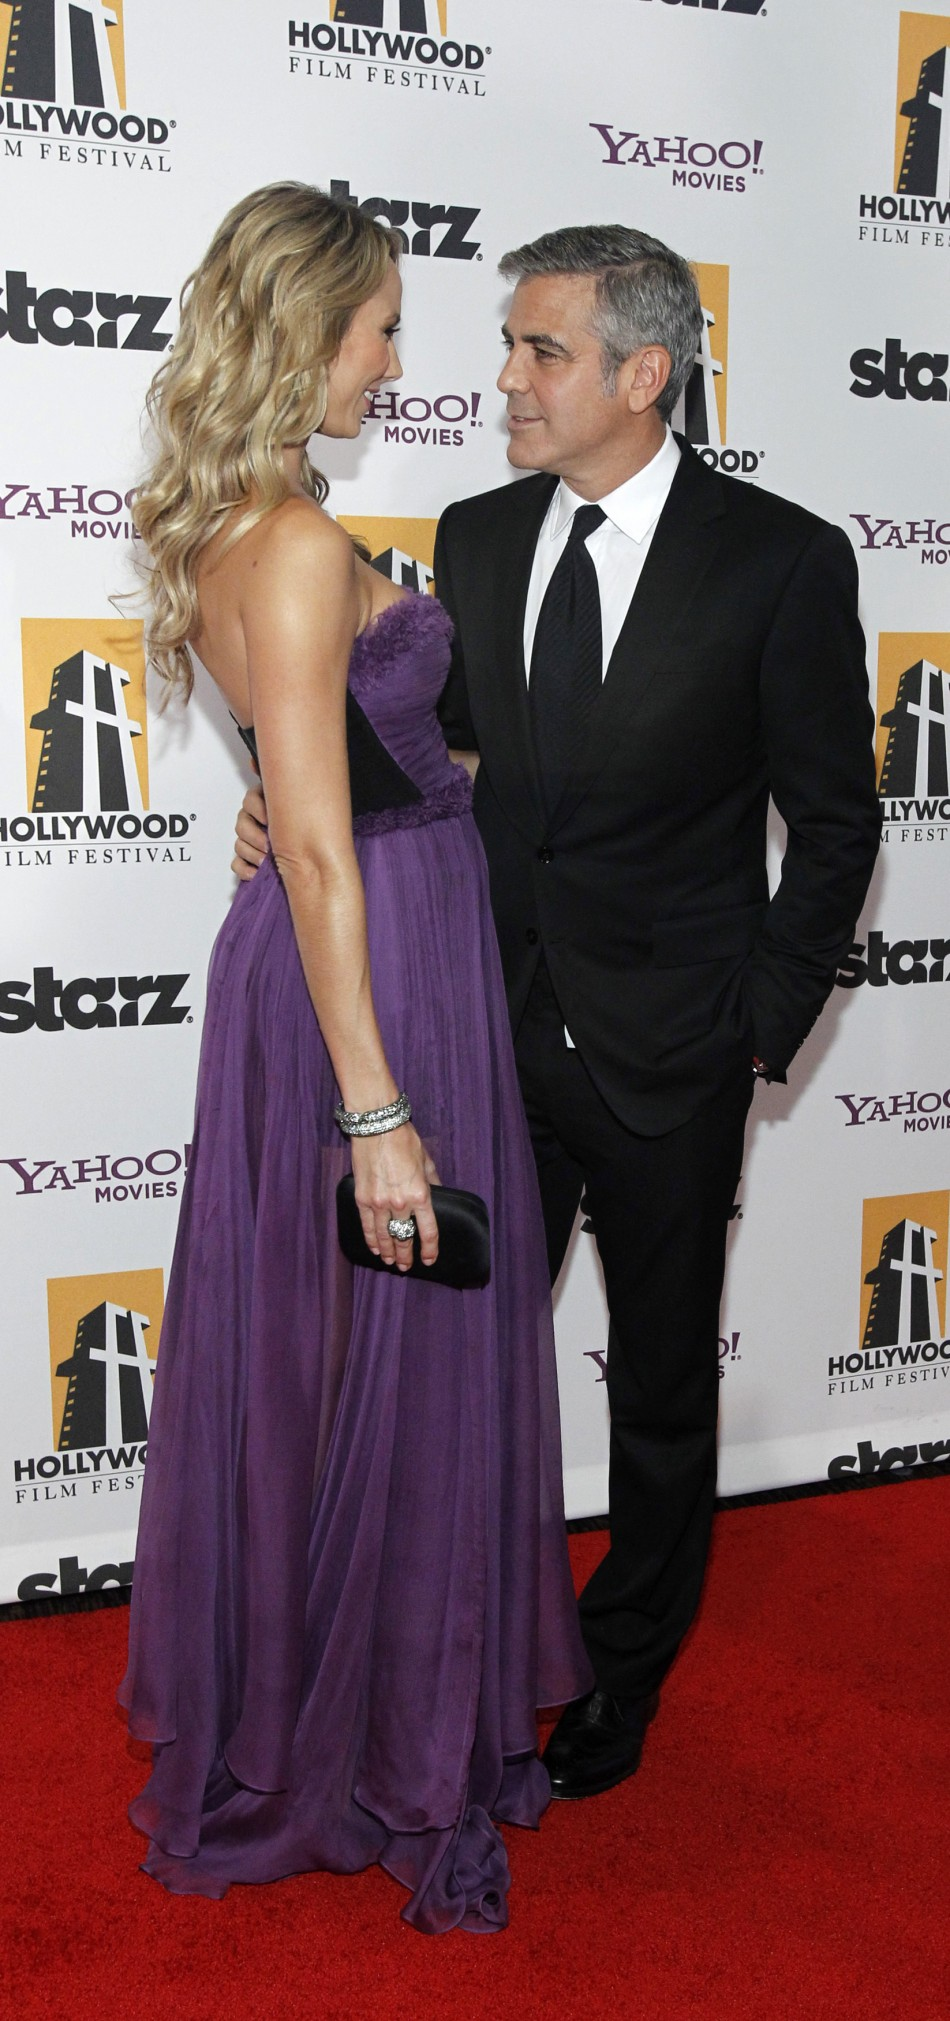 Clooney and Keibler